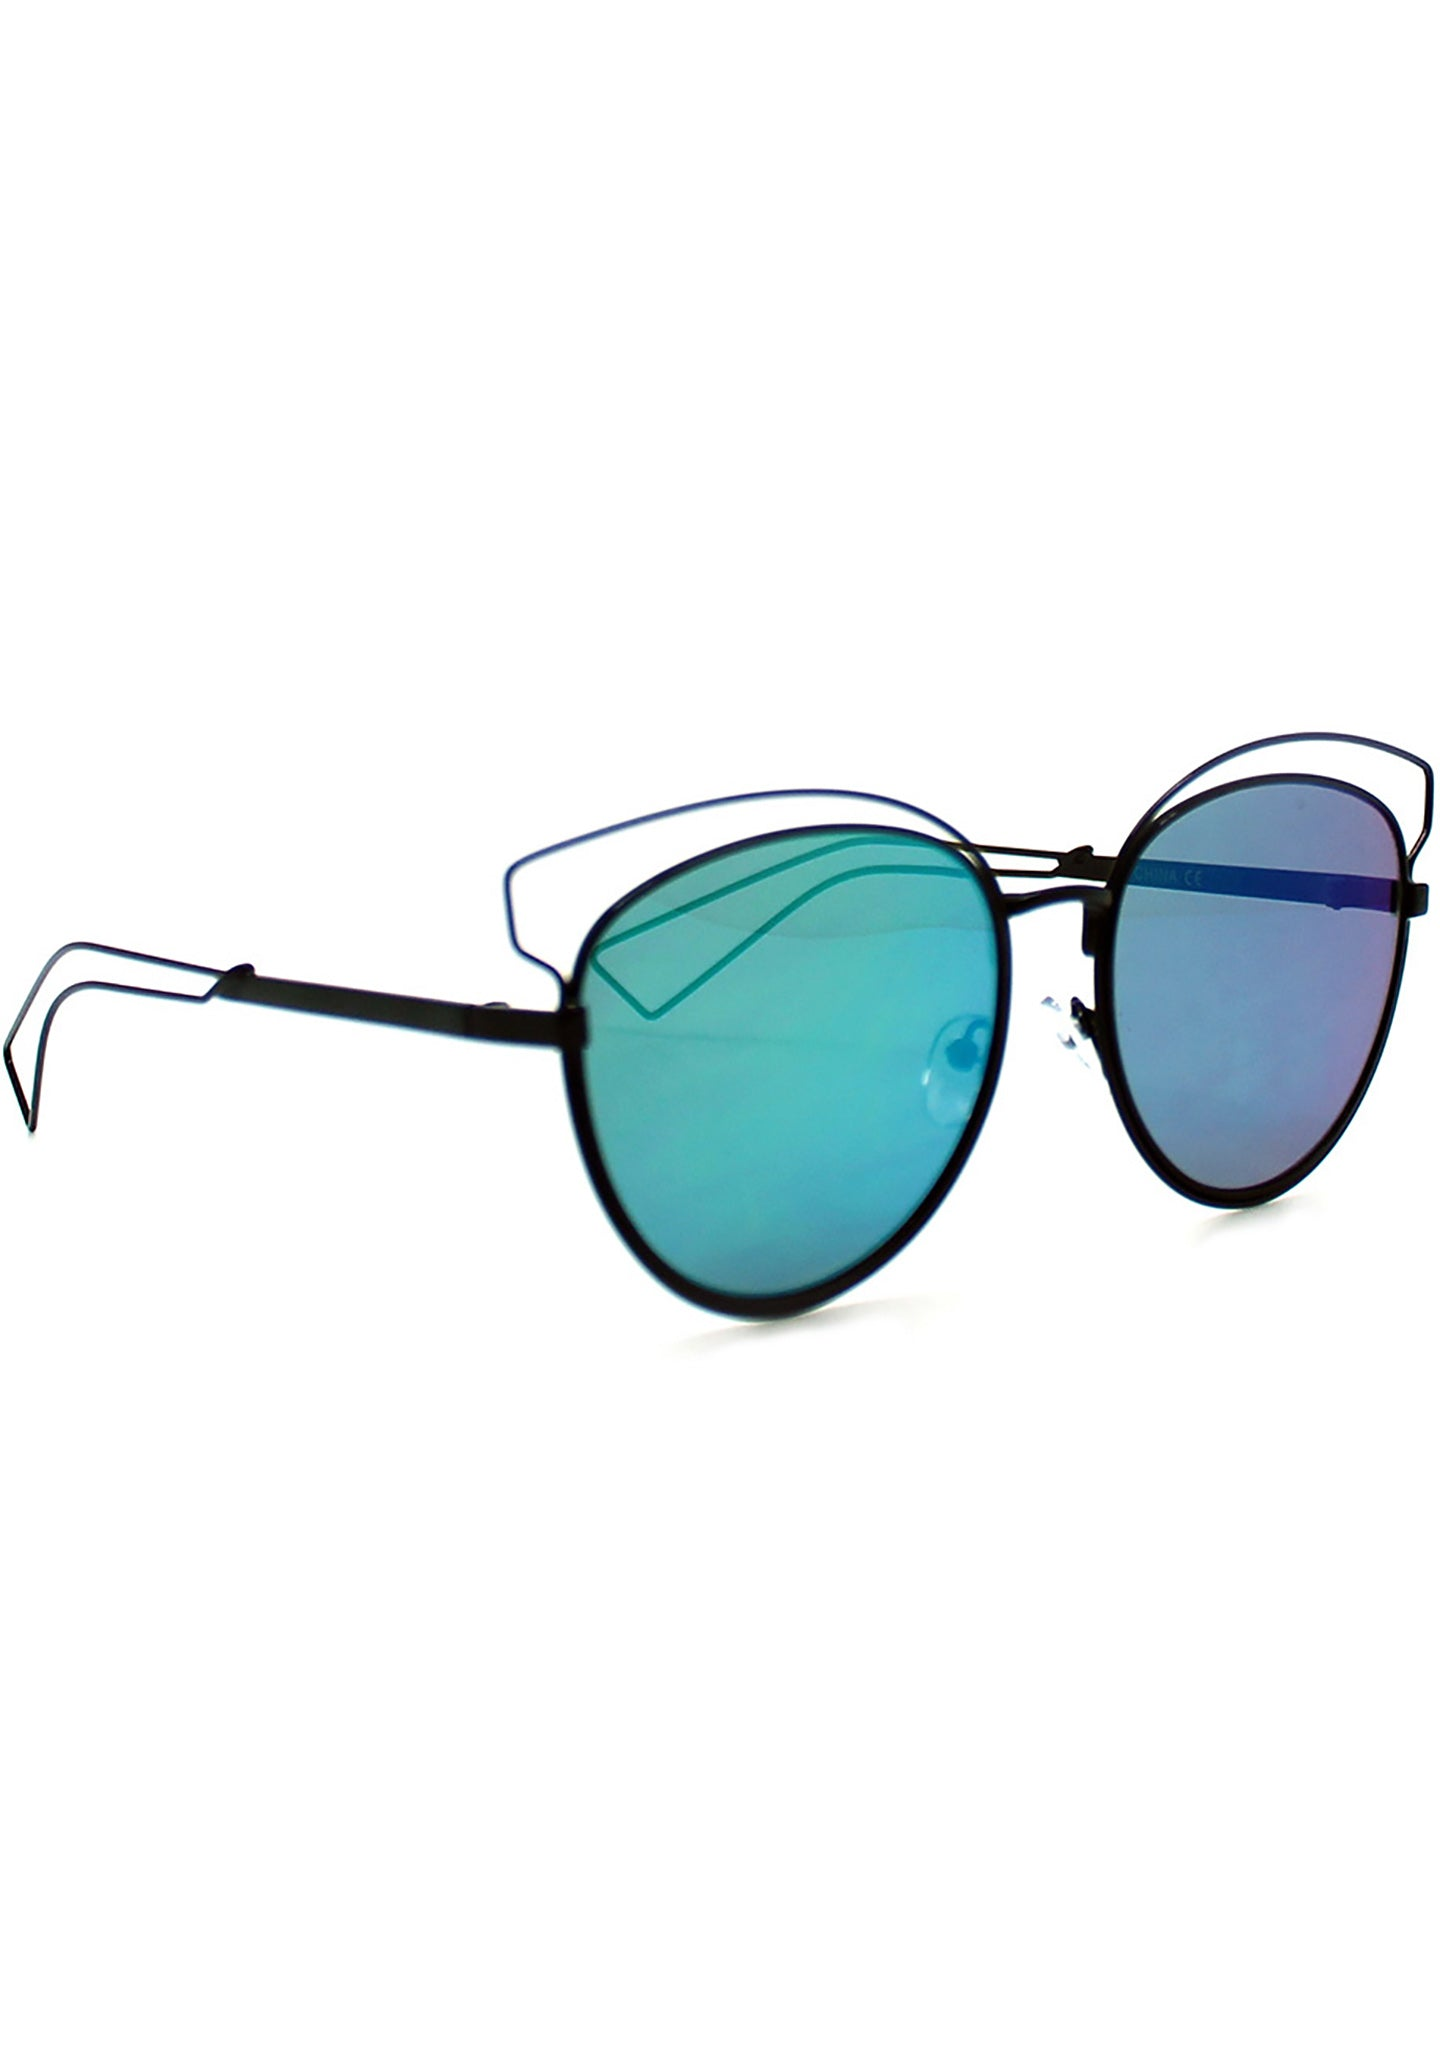 7 LUXE Perfection Sunglasses